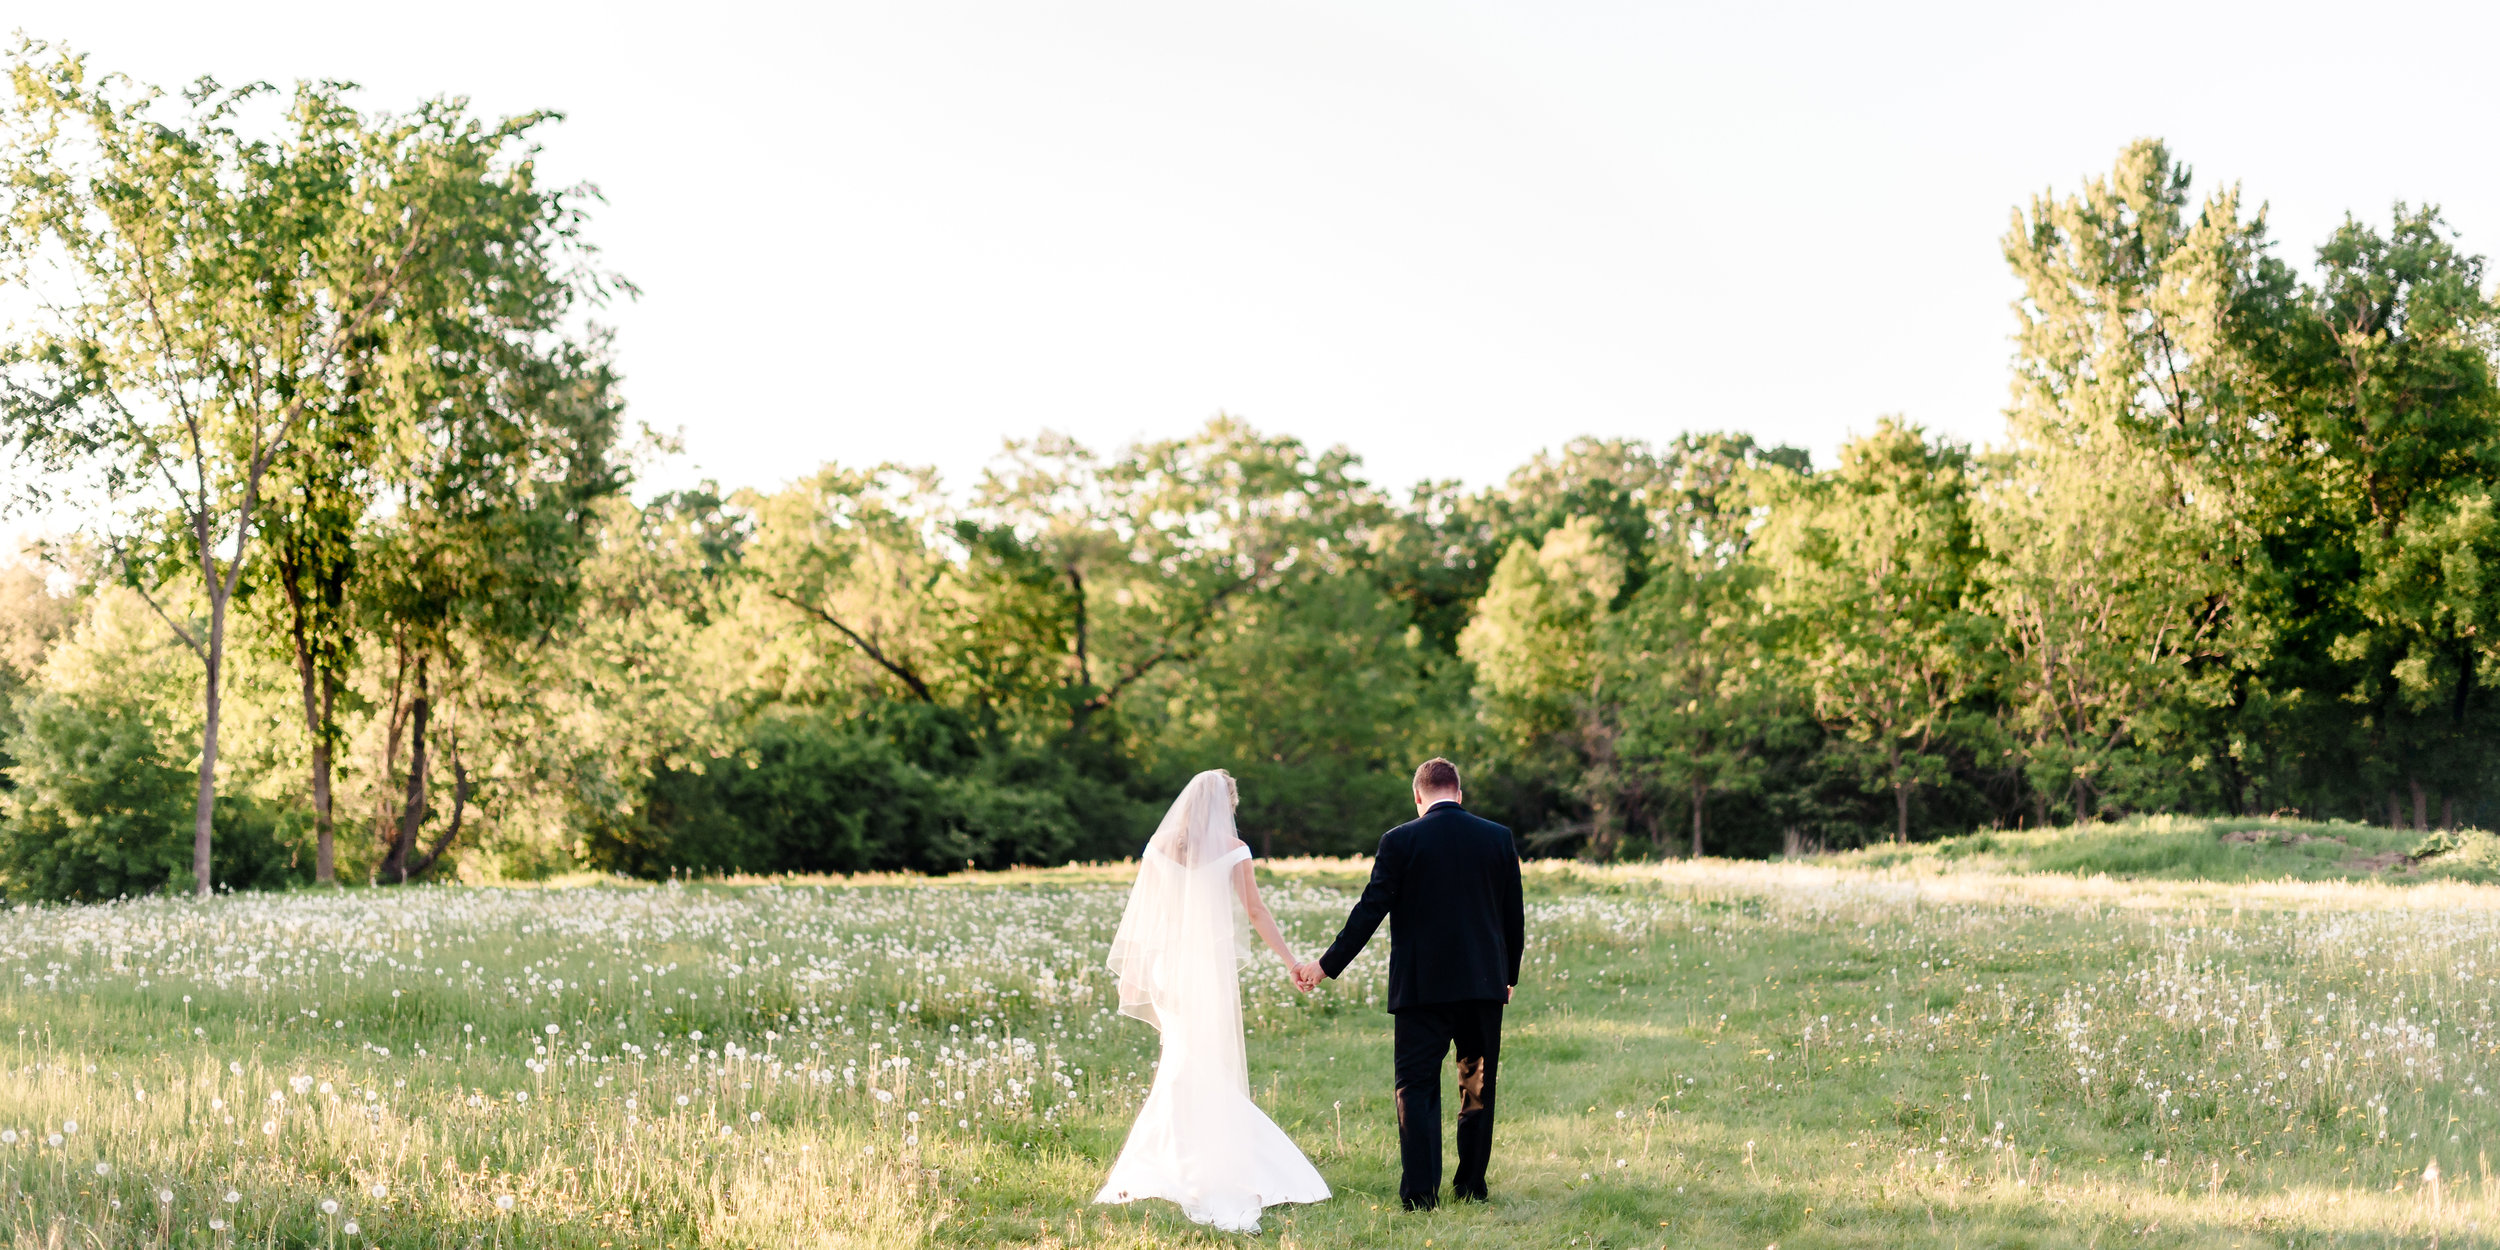 Amanda + Justin - Wedding Album_27.jpg